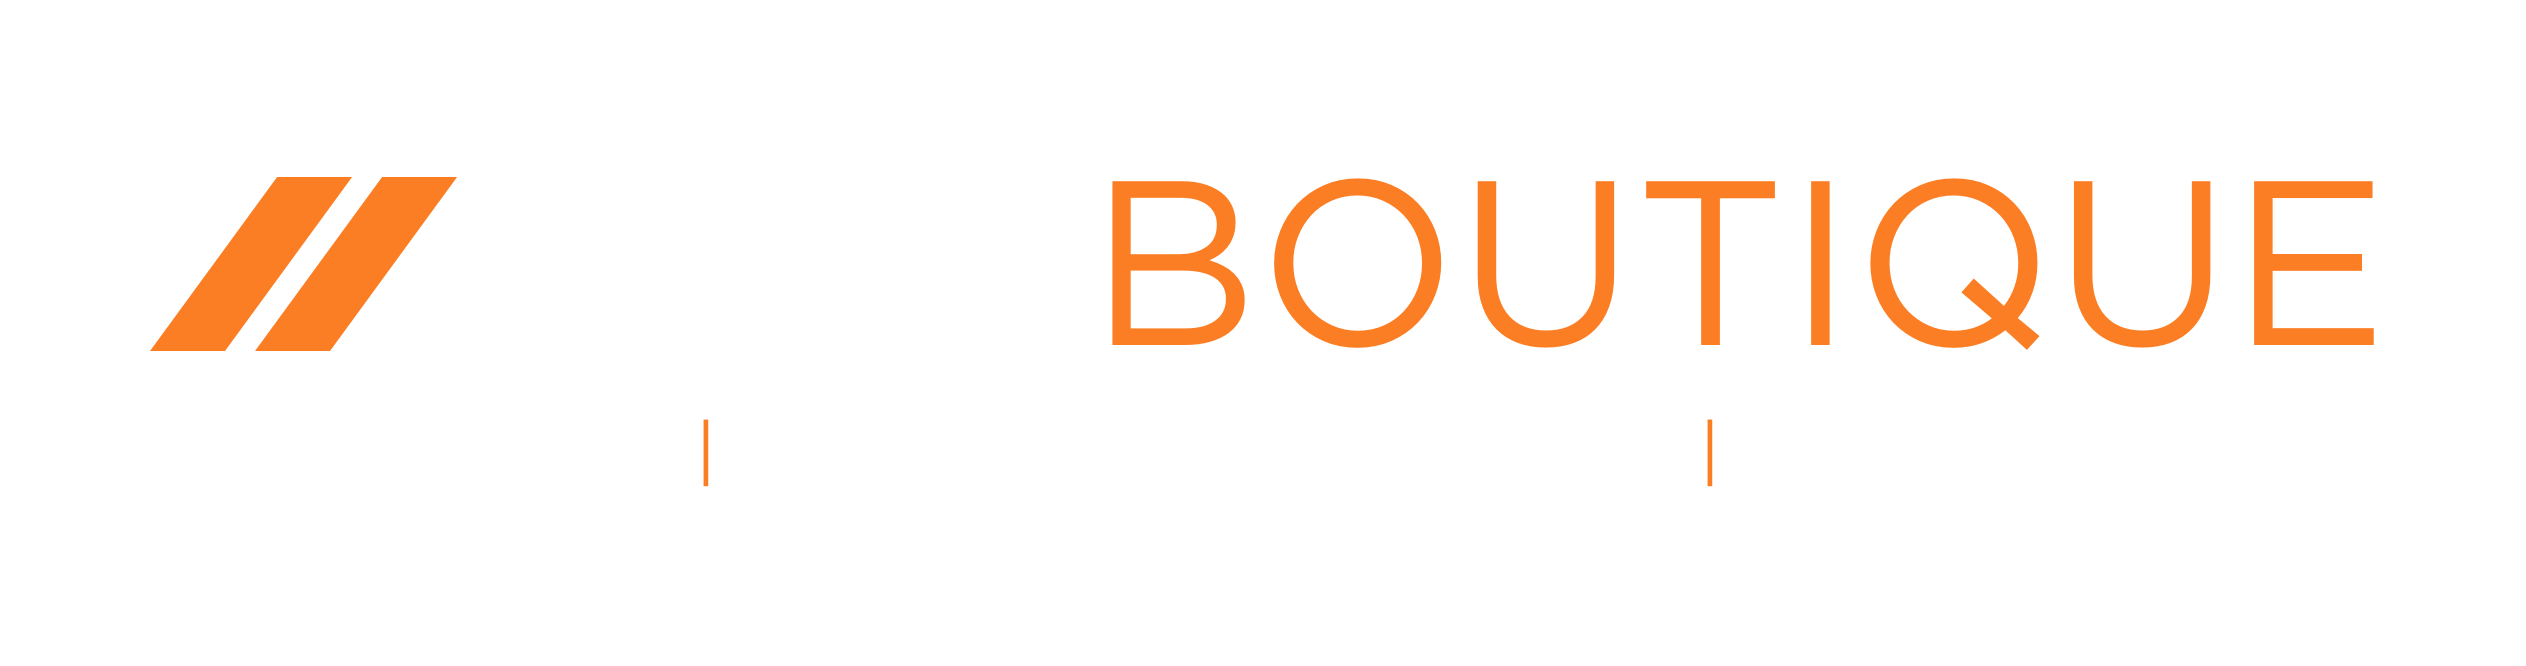 Auto Boutique Florida logo